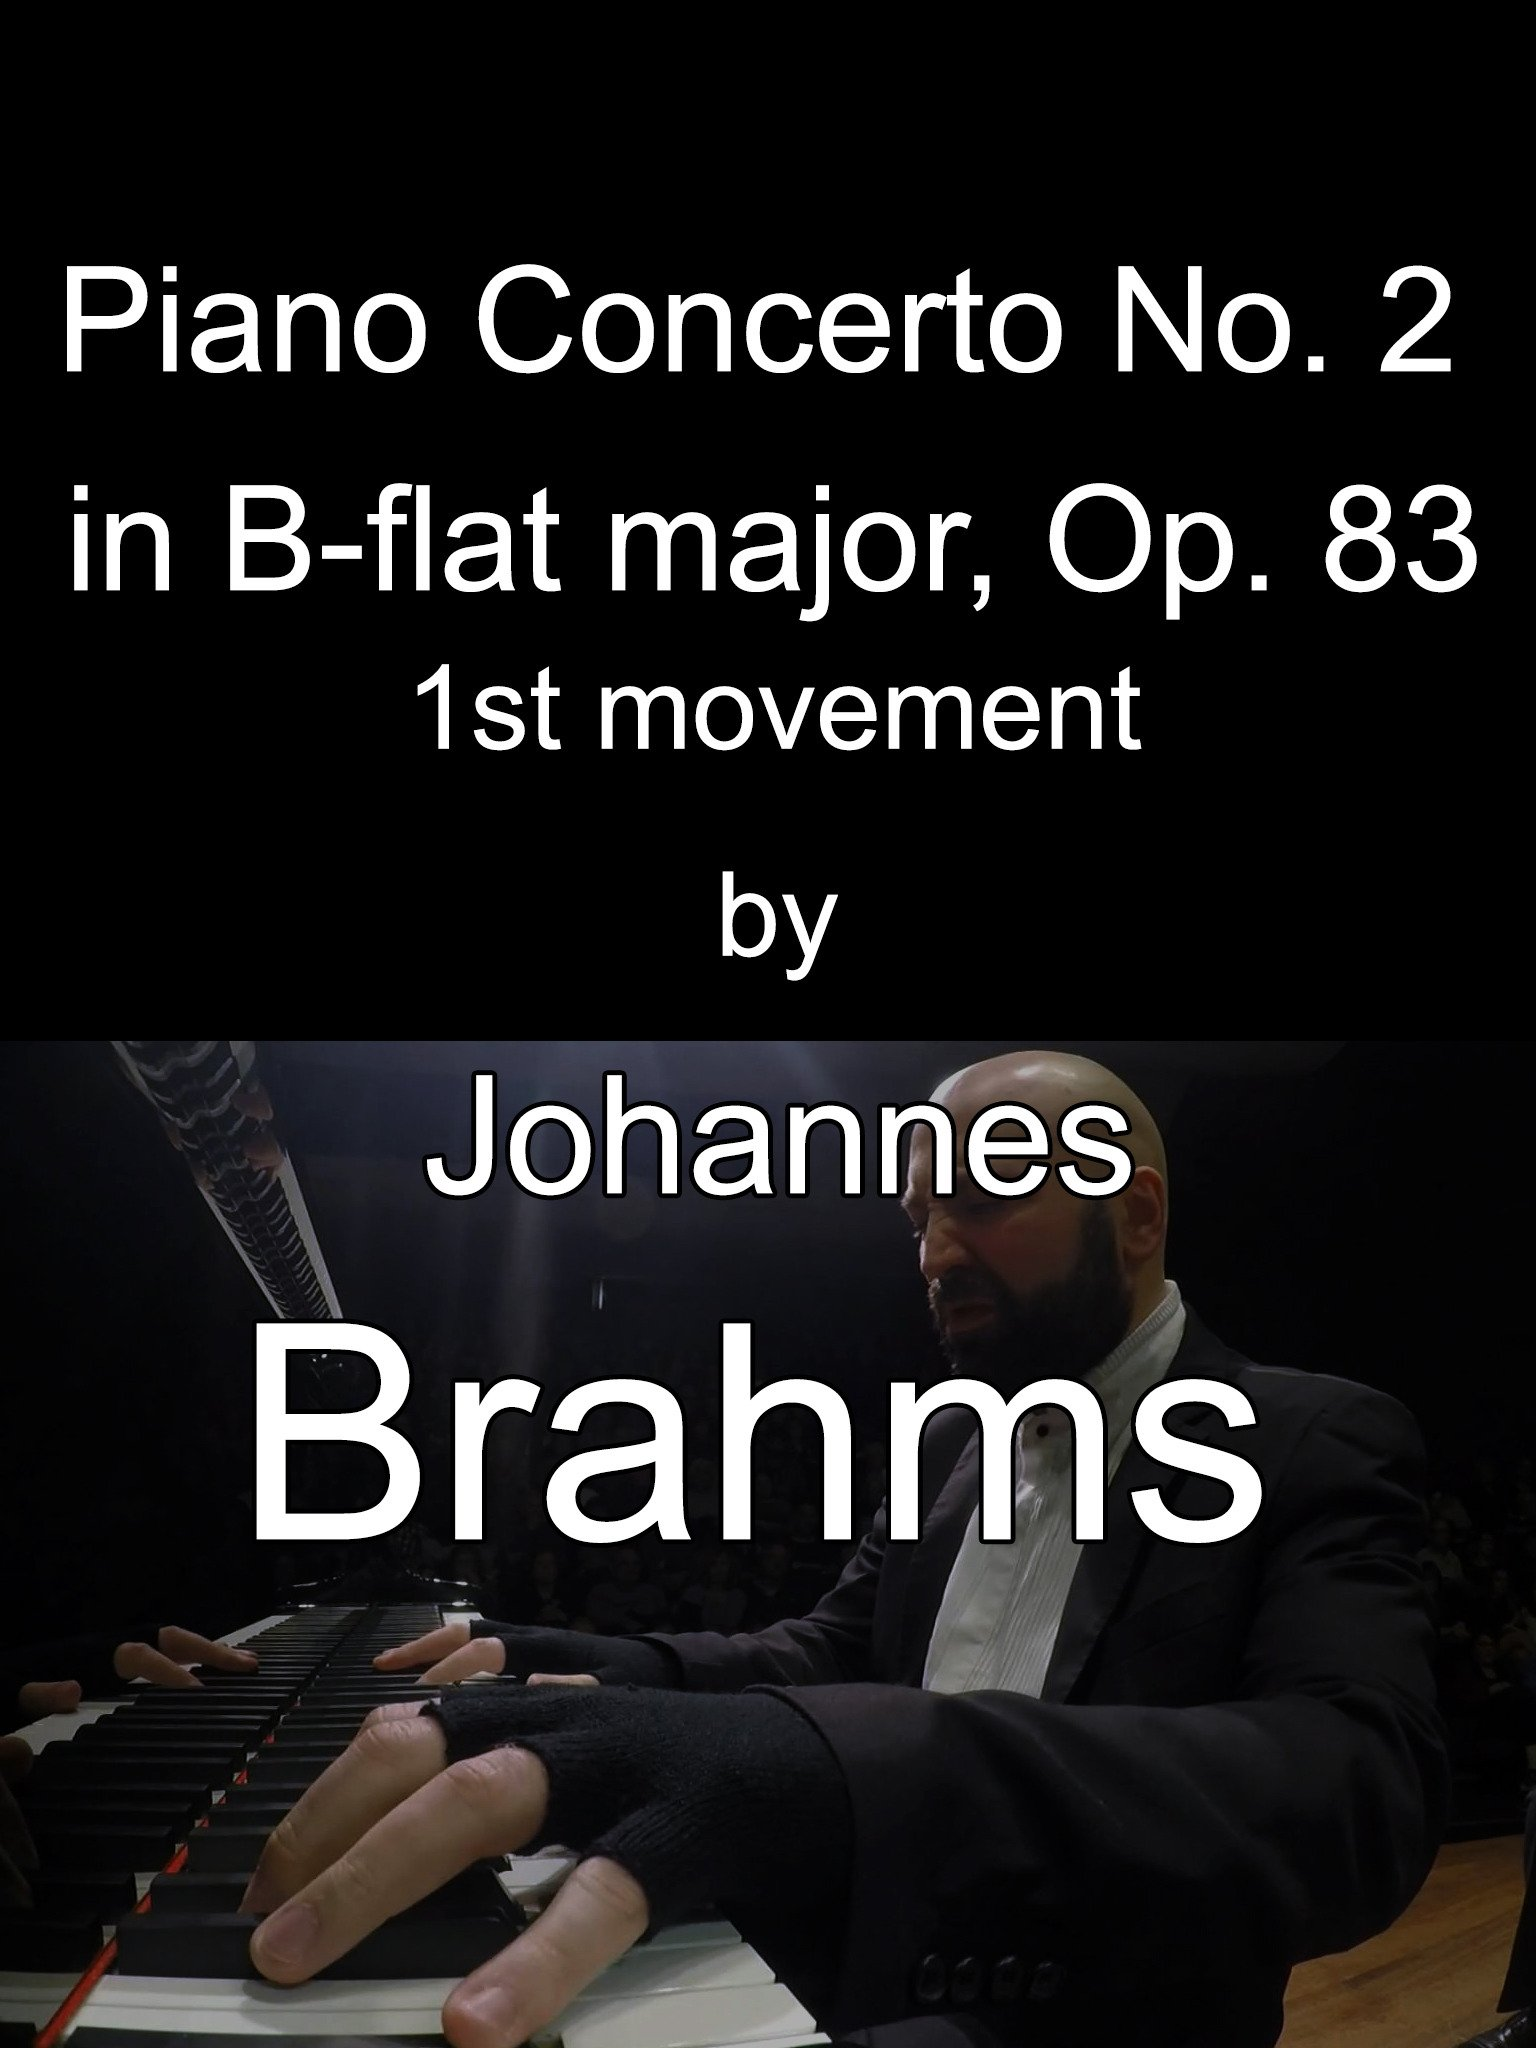 Piano Concerto No. 2 in B-flat major, Op. 83 by Johannes Brahms, 1st Movement on Amazon Prime Video UK